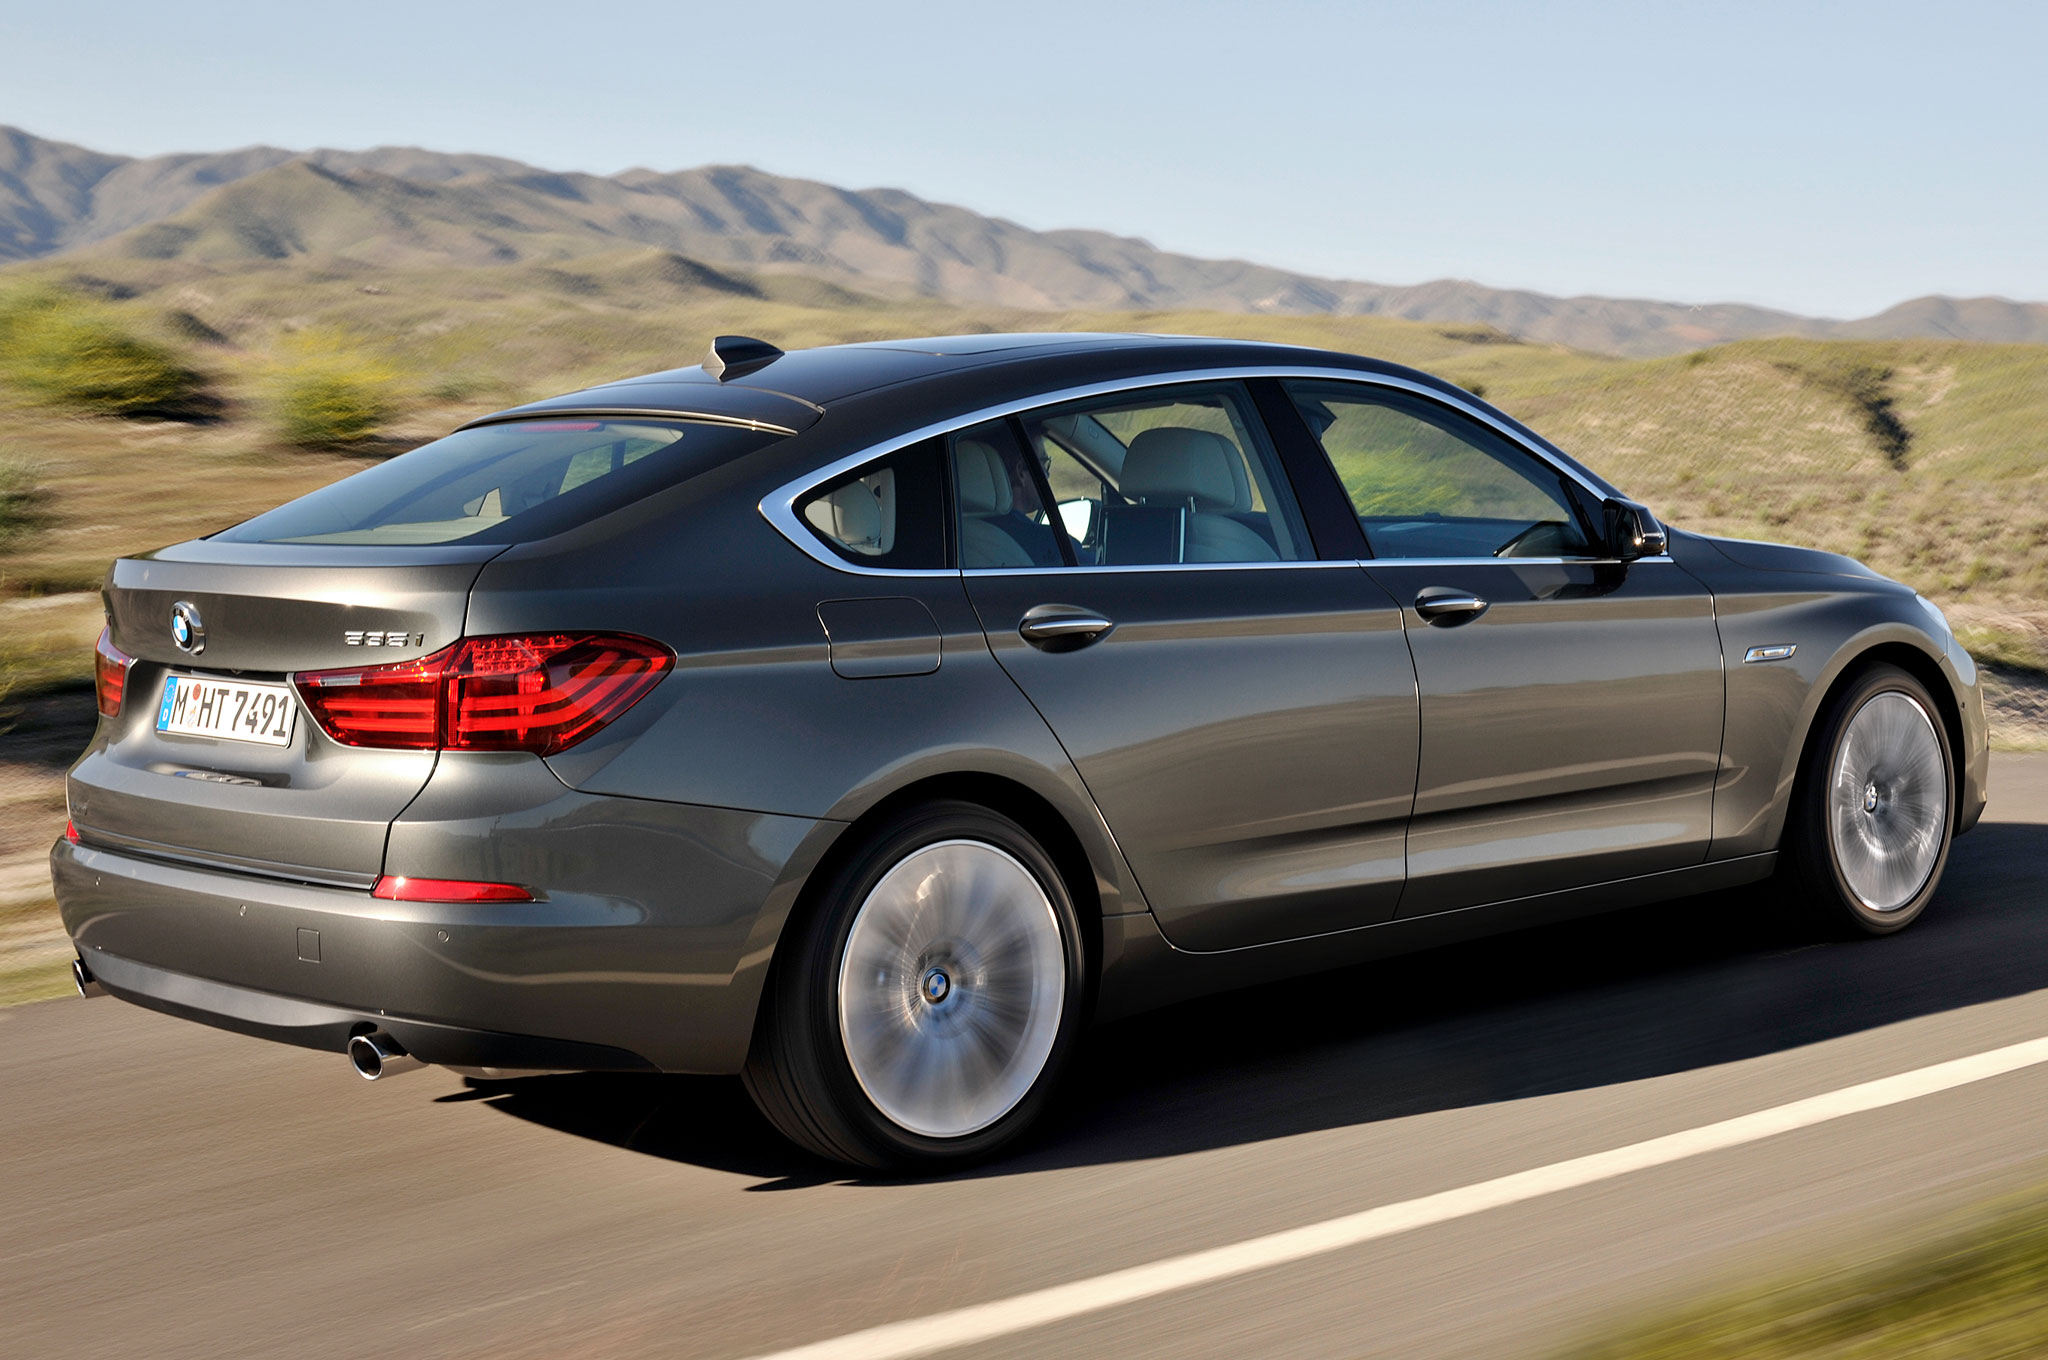 Auto and Cycle Refreshed 2014 BMW 5 Series Gran Turismo Keeps the Hunchback.  Article by Alex Nishimoto on May 21, 2013